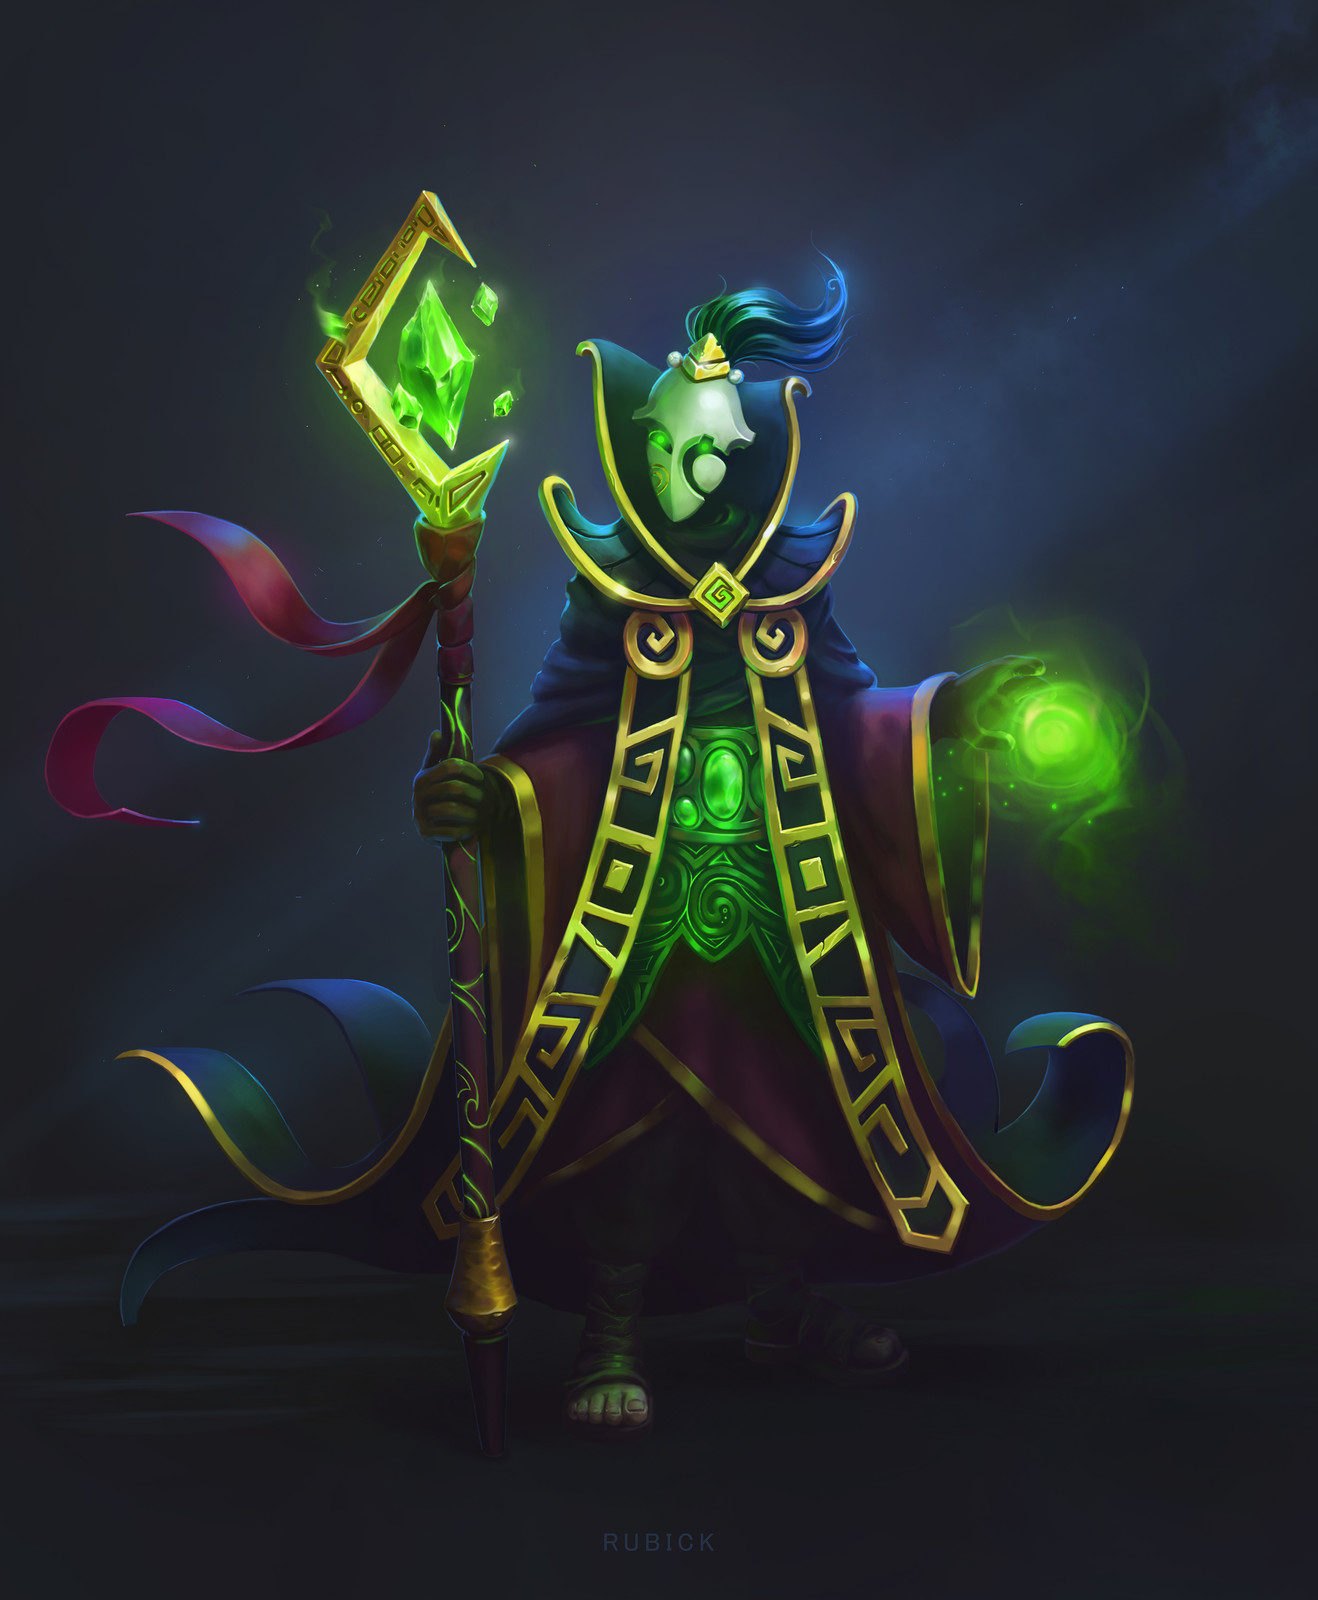 Rubick Fan Art